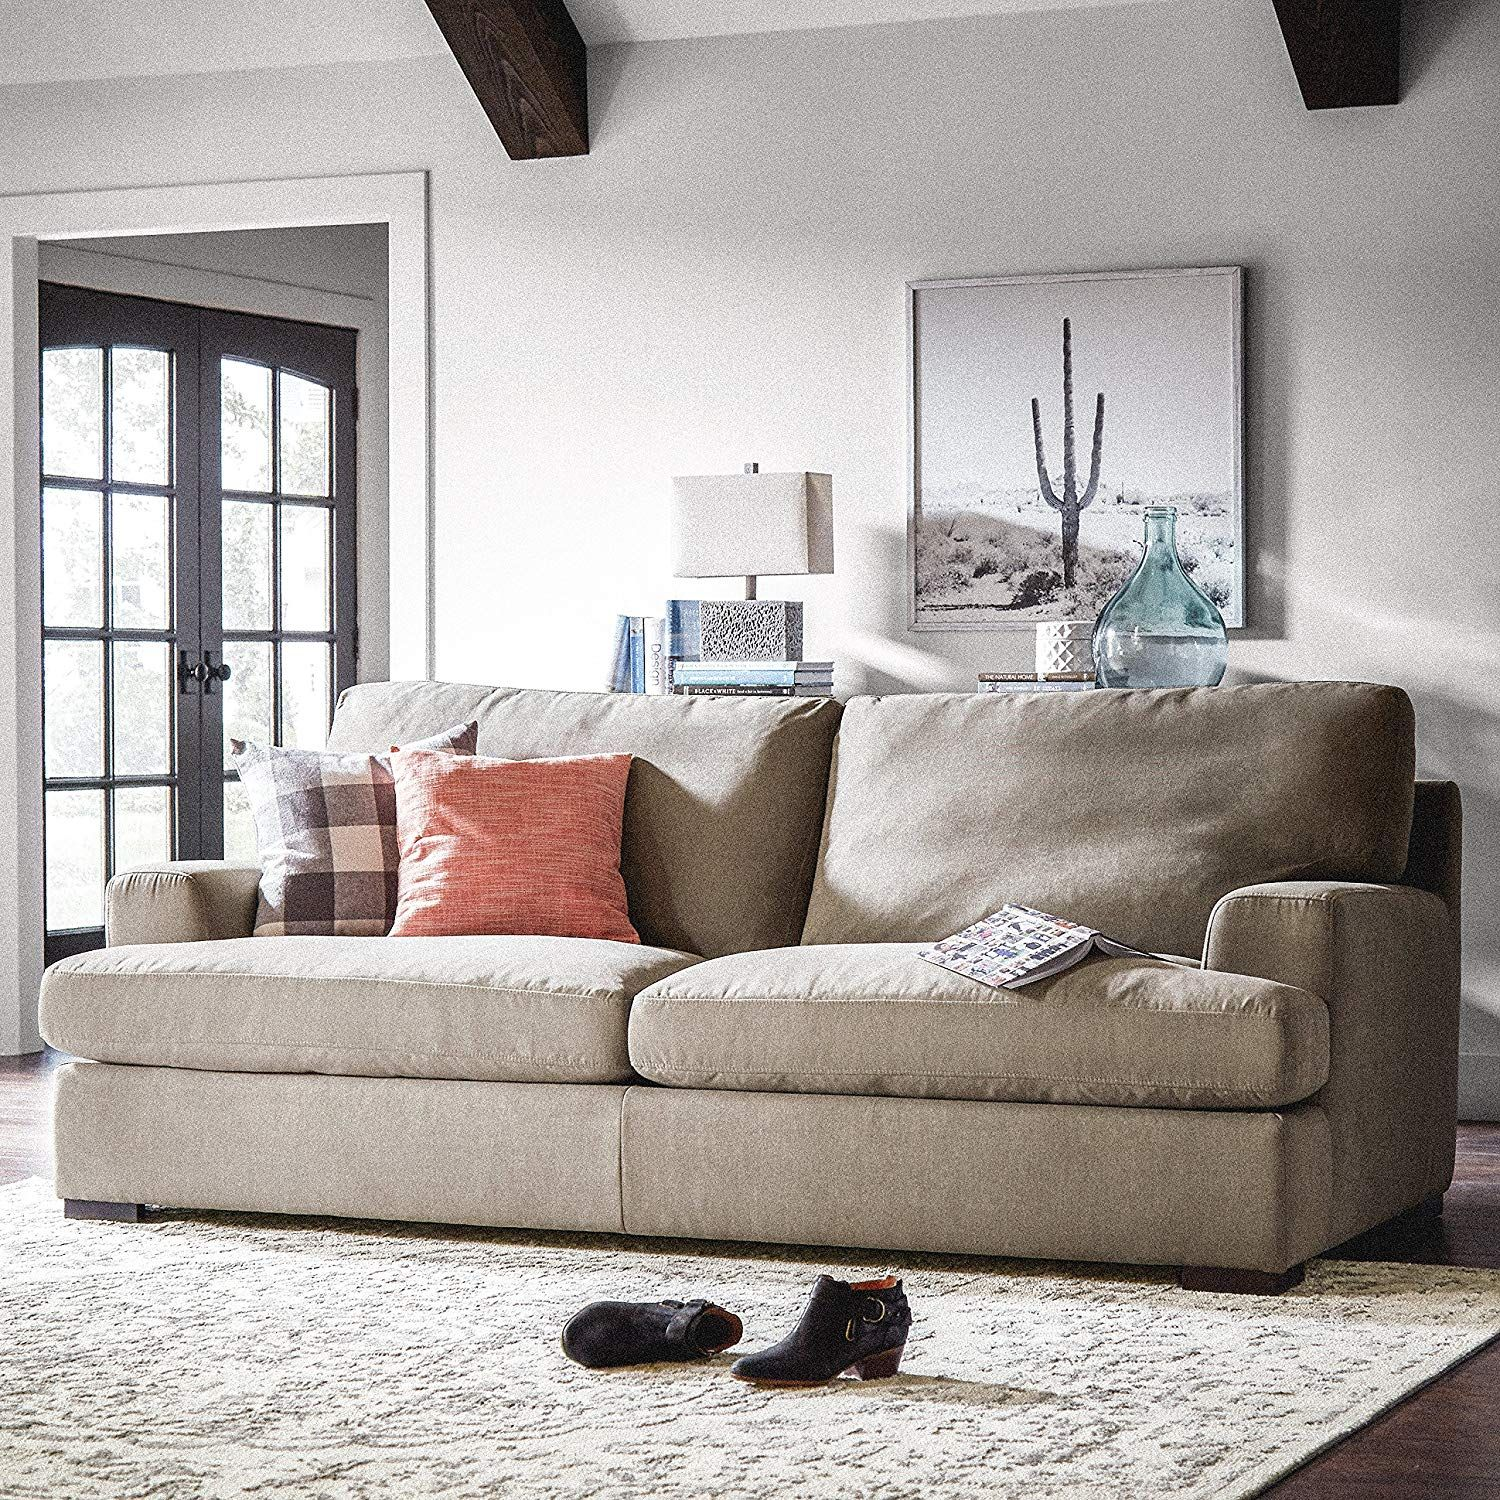 Amazon Sofa Sale Cheap Sofas Amazon Sale Recipes With More Recipes With More